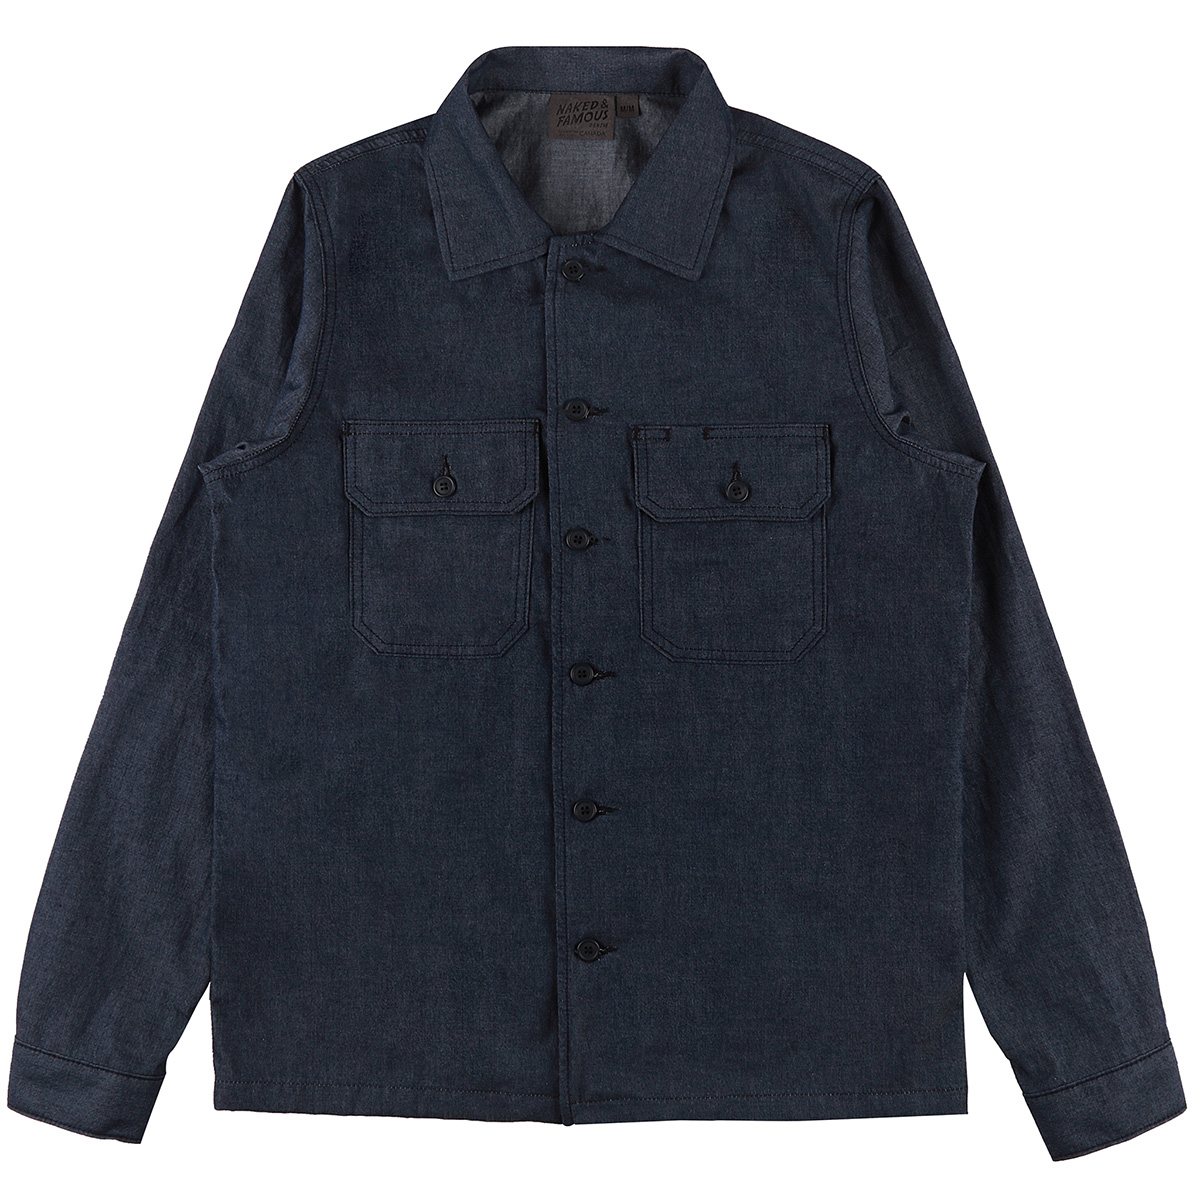 4.5oz INDIGO DENIM - Workshirt